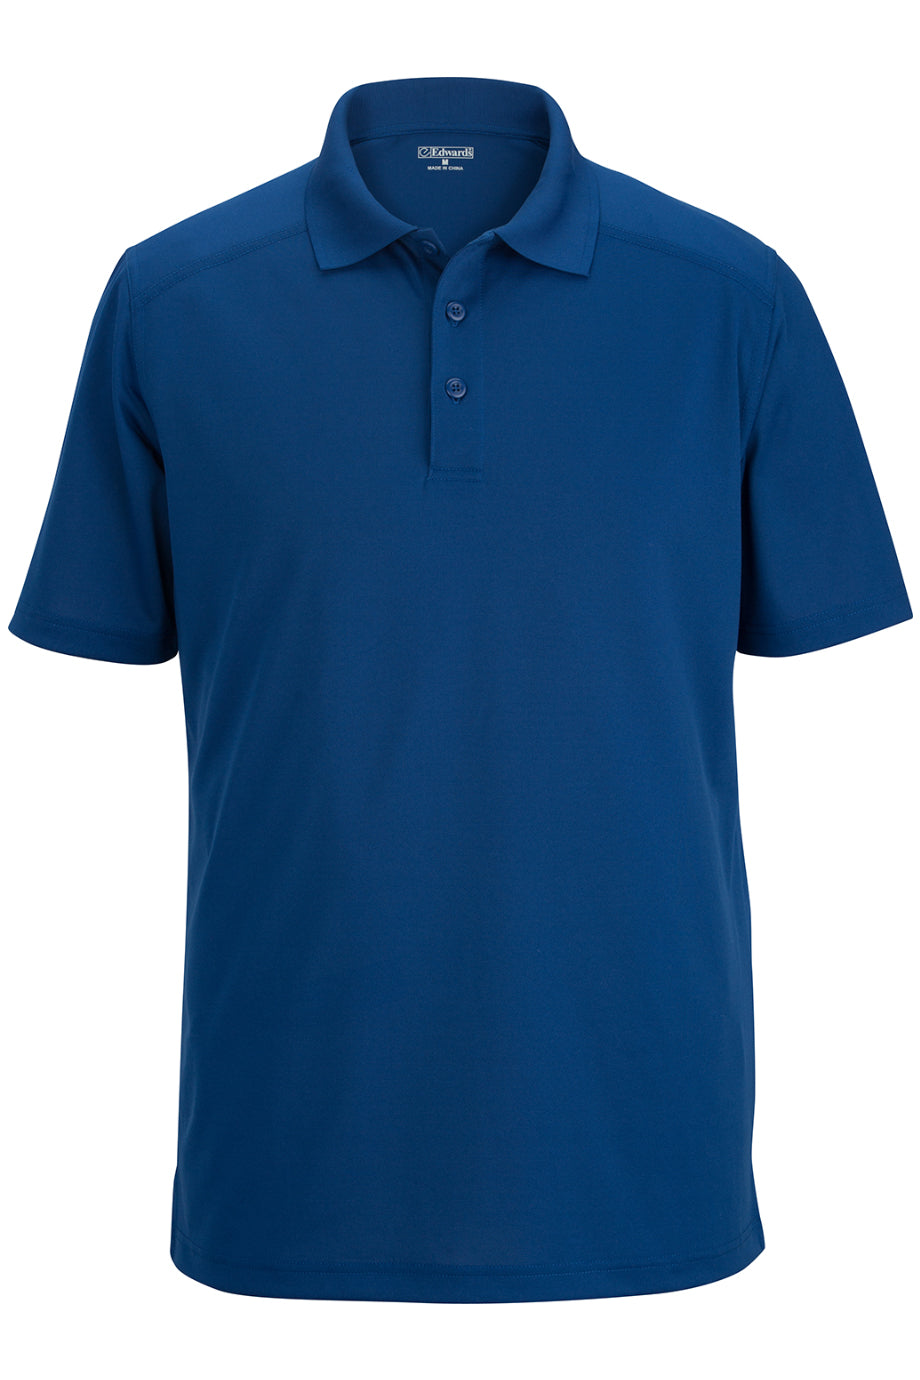 Royal Edwards Mens Light Weight Snag-Proof Short Sleeve Polo